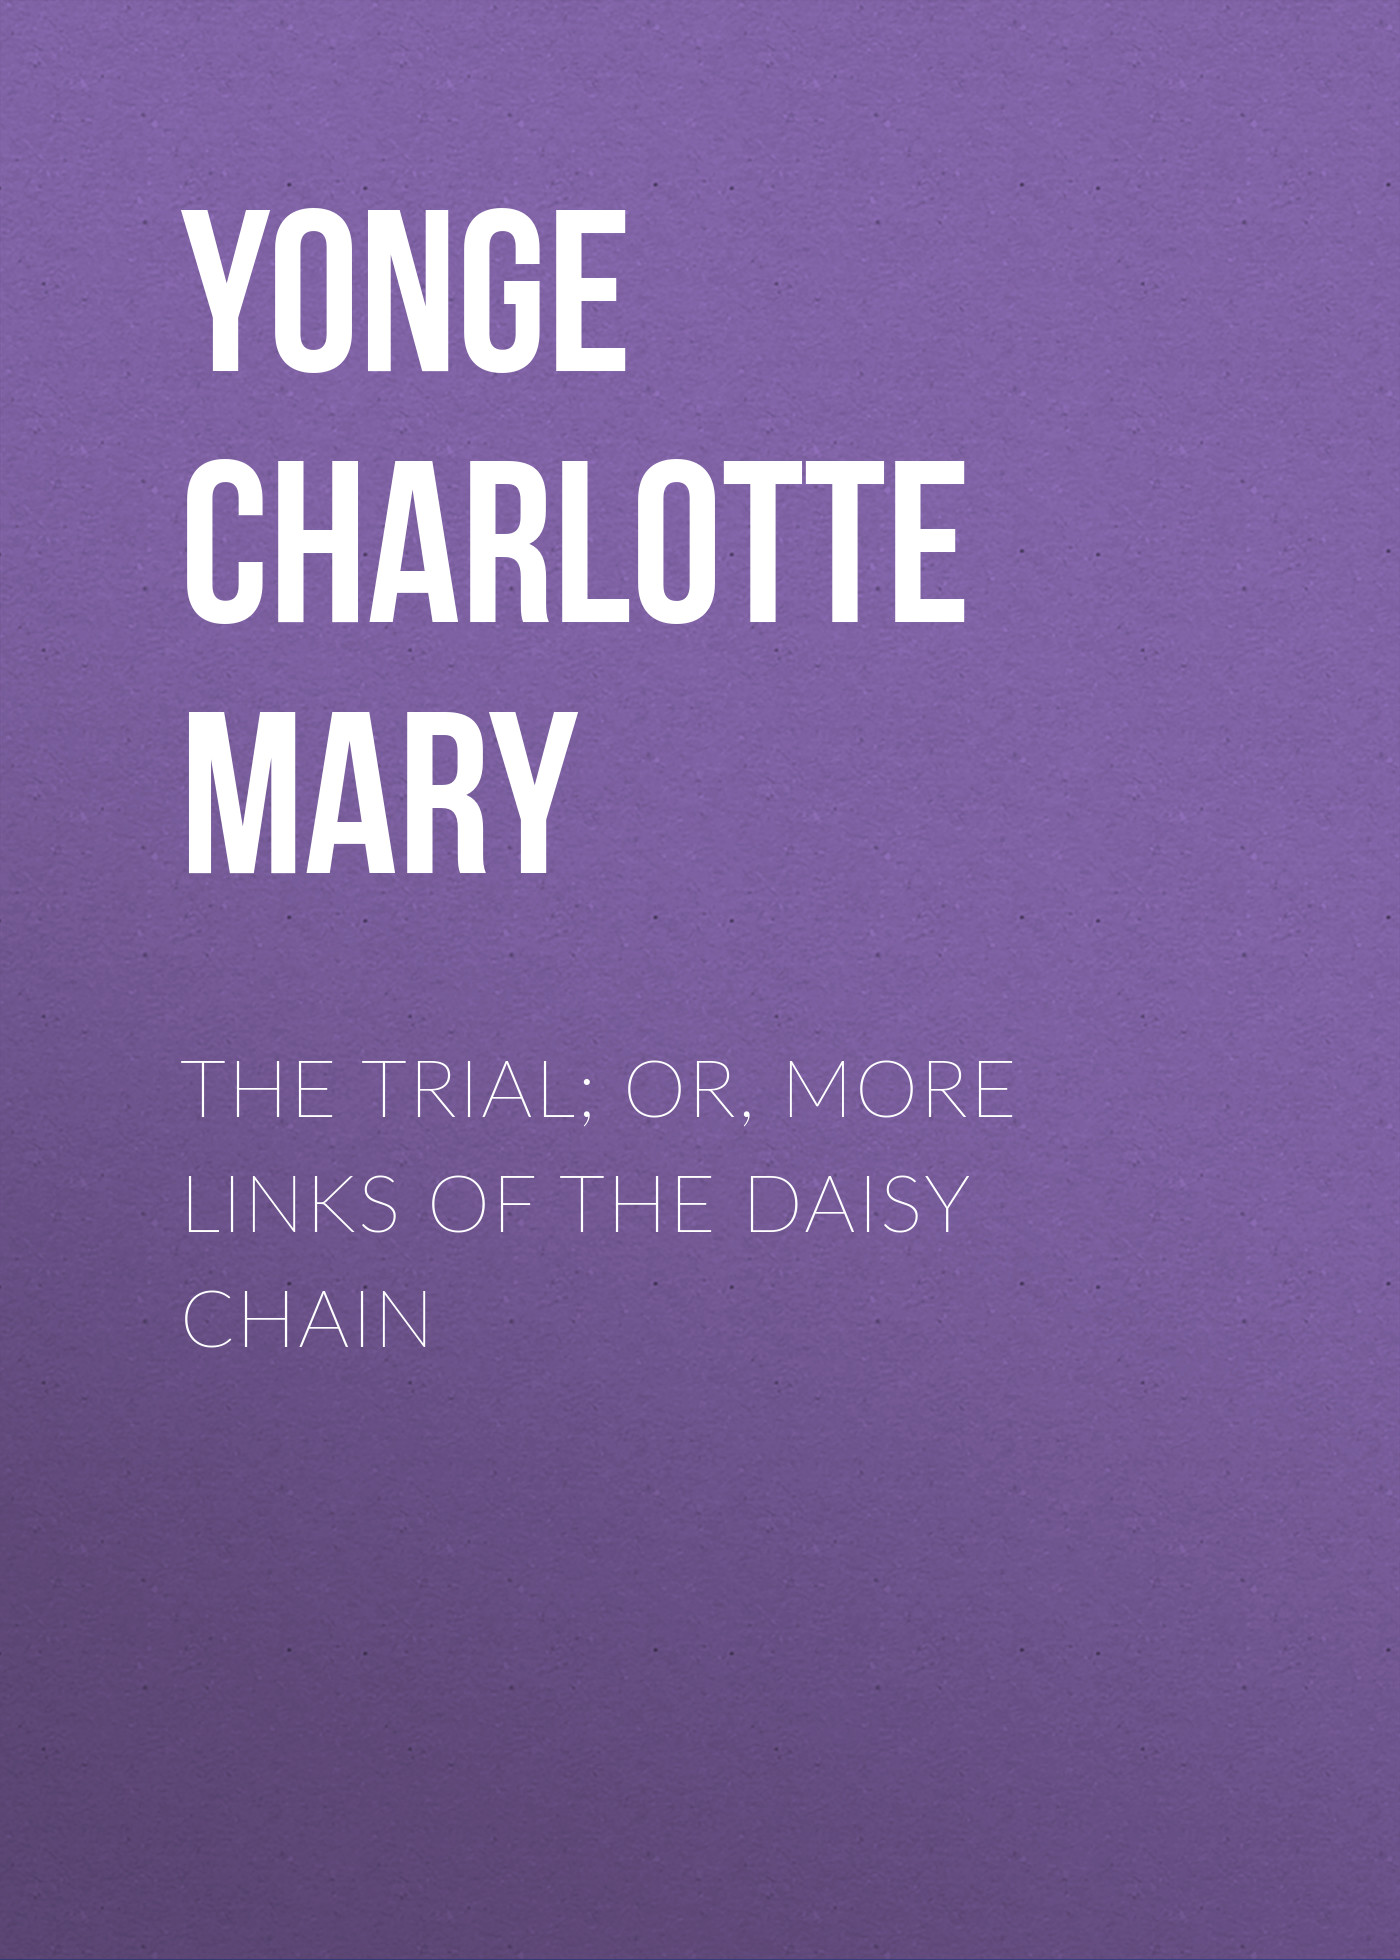 Yonge Charlotte Mary The Trial; Or, More Links of the Daisy Chain charlotte m yonge life of john coleridge patteson missionary bishop of the melanesian islands